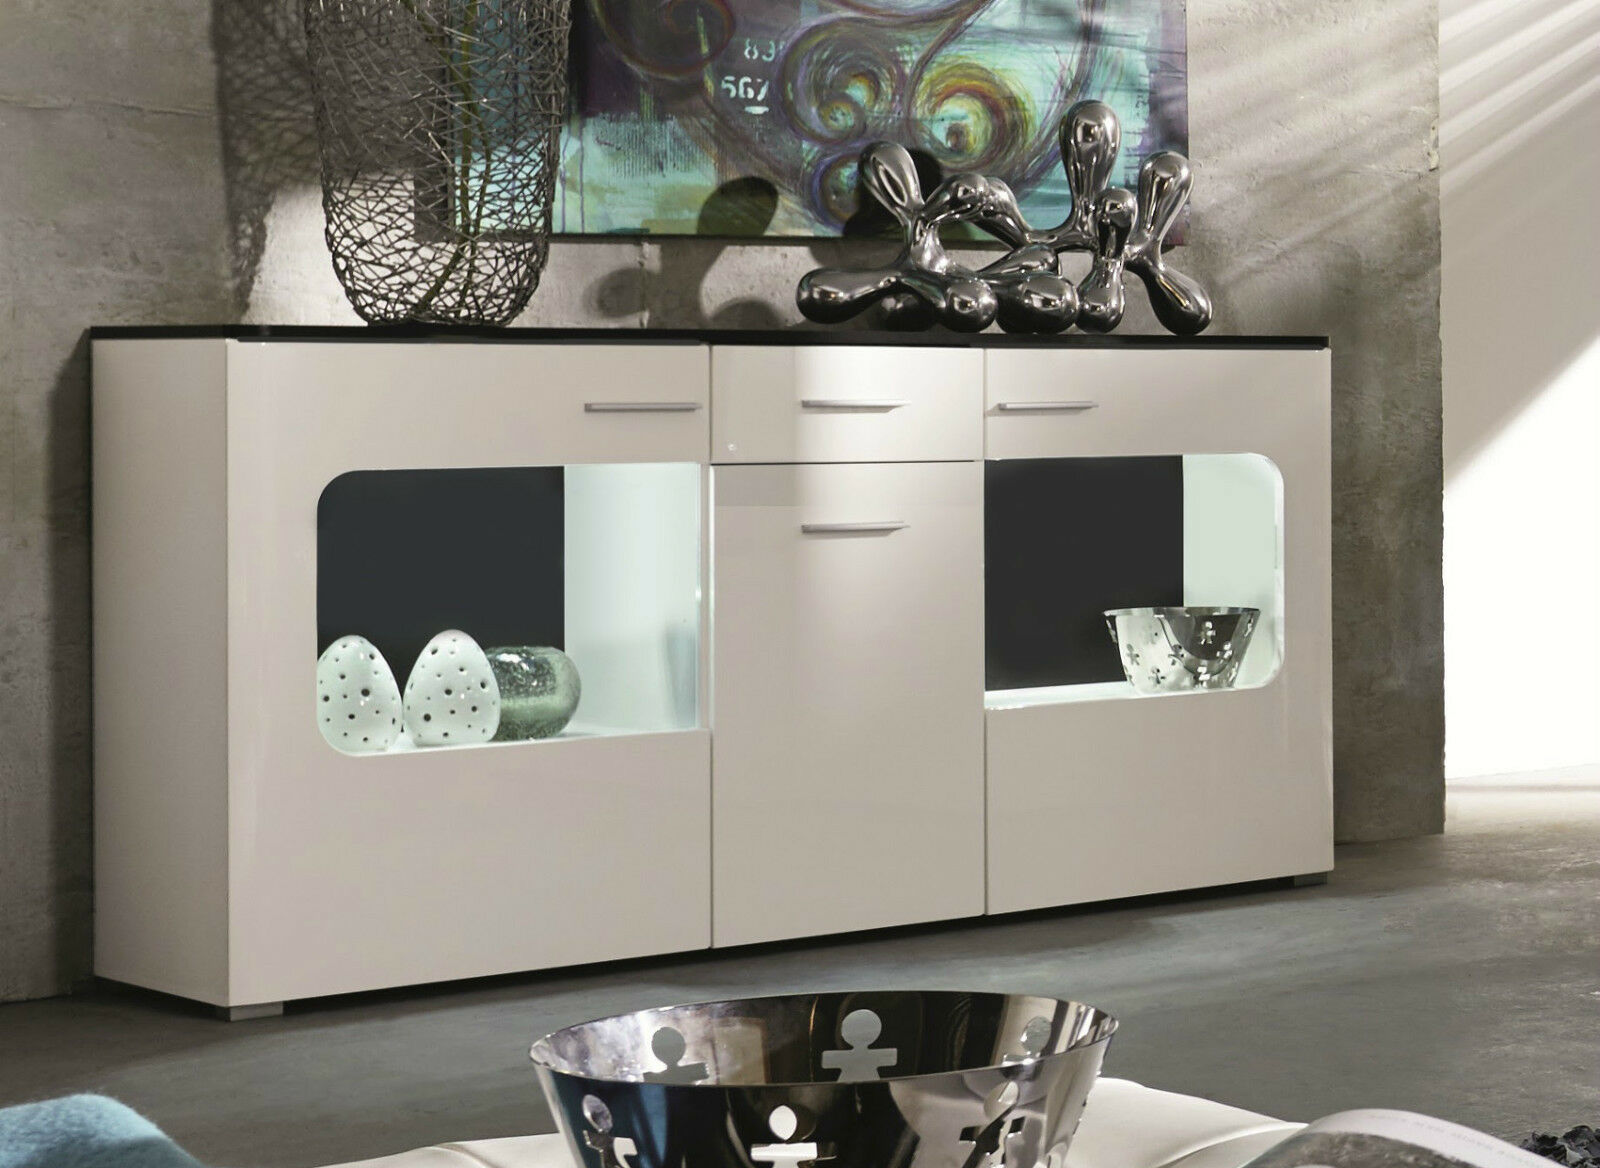 kommode sideboard hochglanz weiss anrichte design m bel schrank inkl led lucky eur 336 99. Black Bedroom Furniture Sets. Home Design Ideas